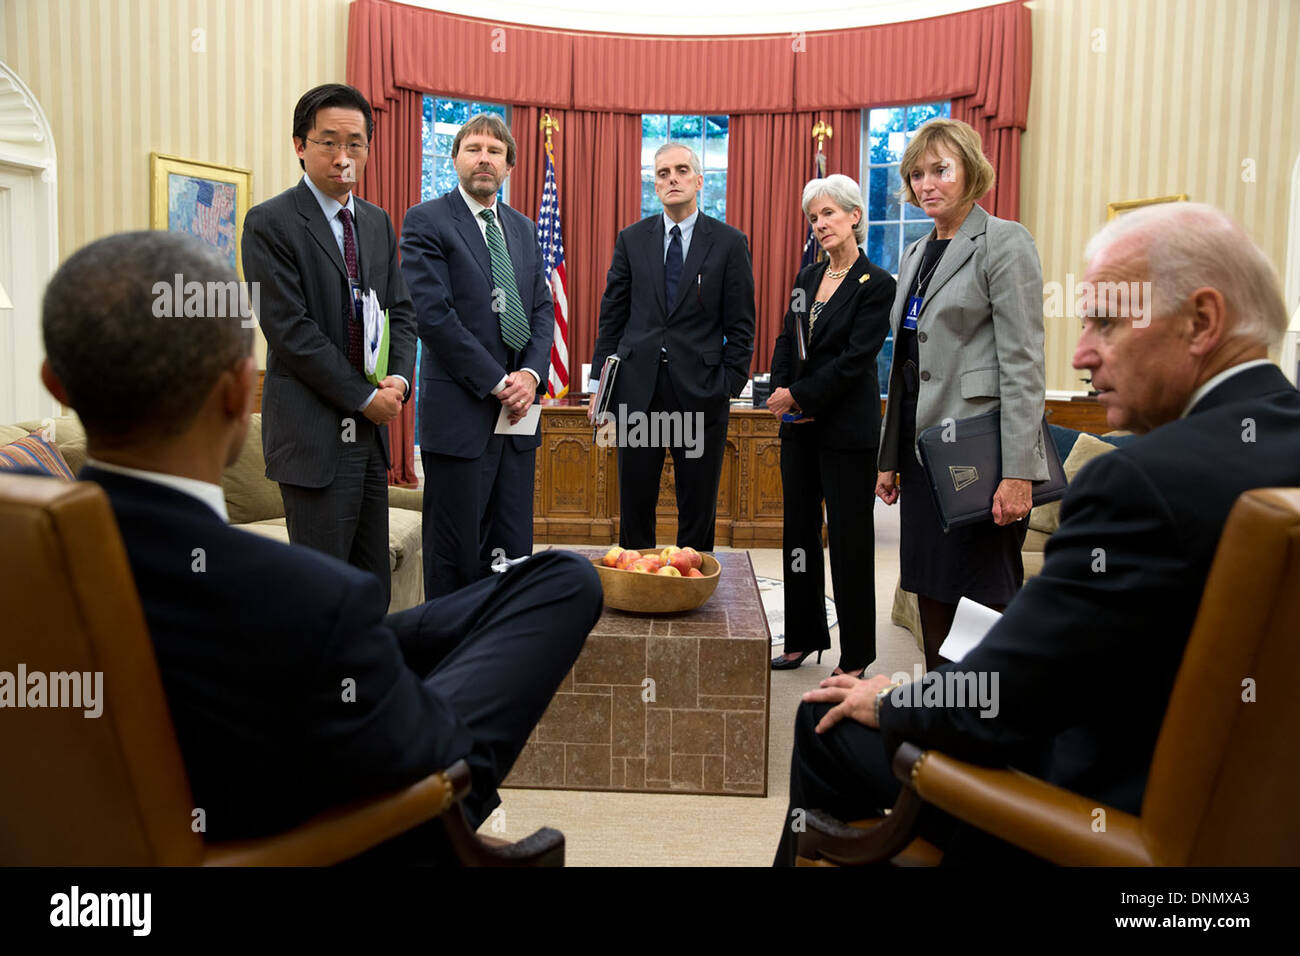 US President Barack Obama talks with staff at the conclusion of a meeting to discuss the problems associated with enrollment in the Affordable Care Act in the Oval Office of the White House October 10, 2013 in Washington, DC. - Stock Image